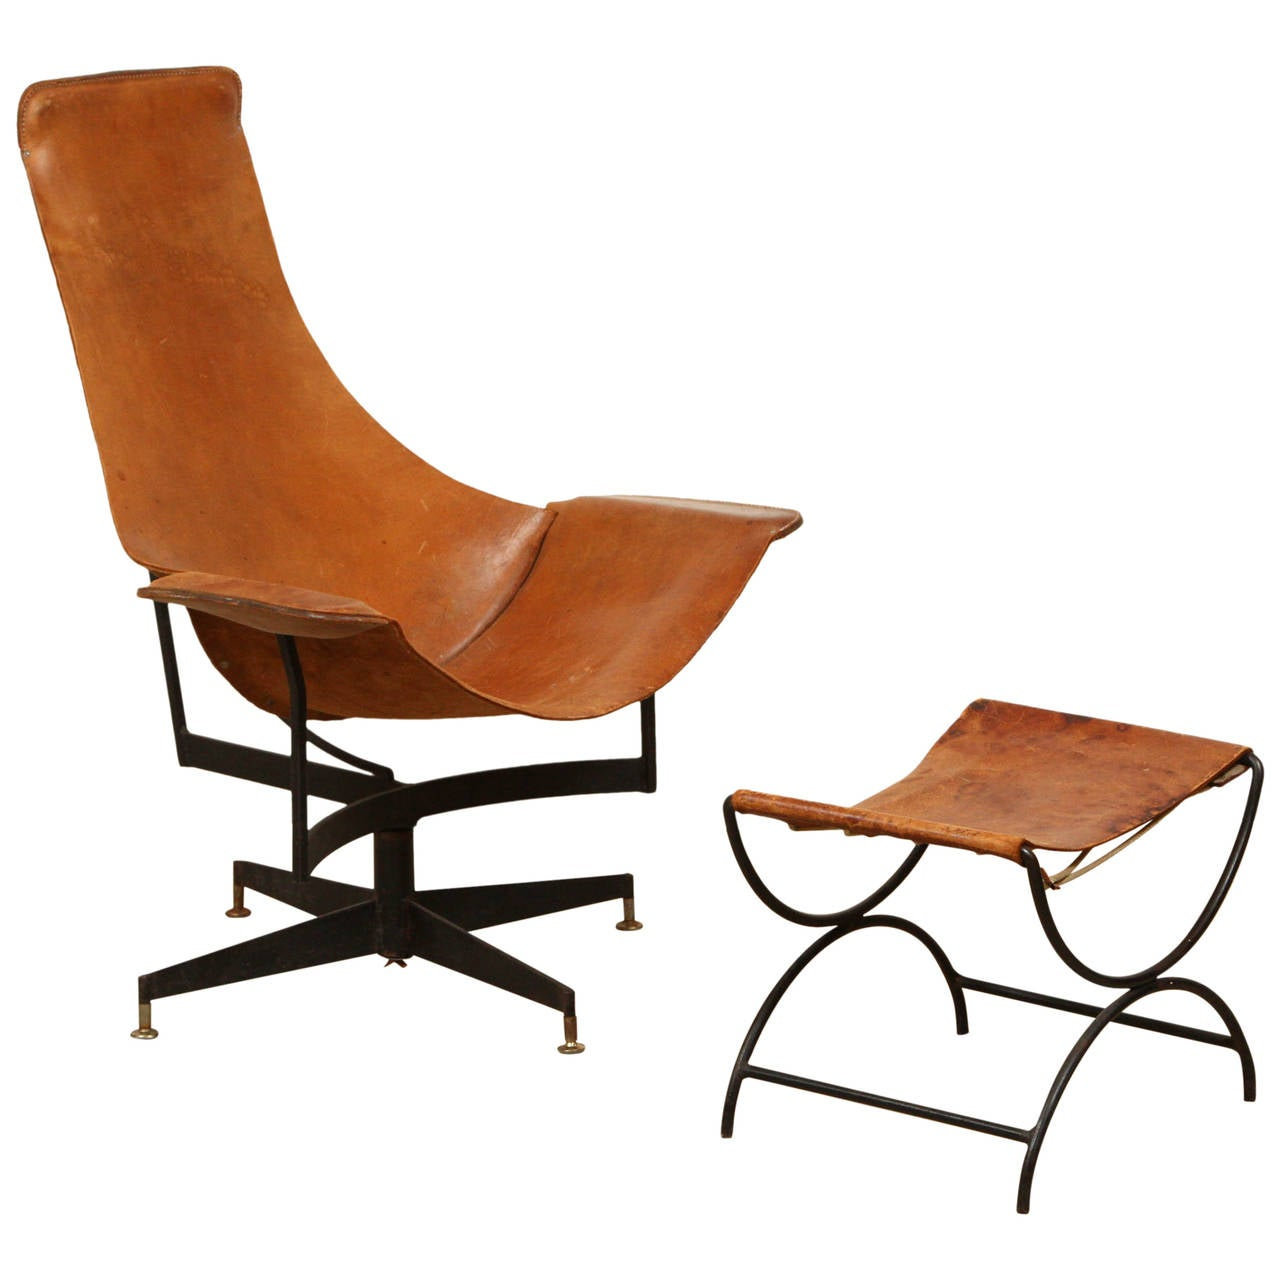 this leather swivel chair and ottoman by max gottschalk is no longer